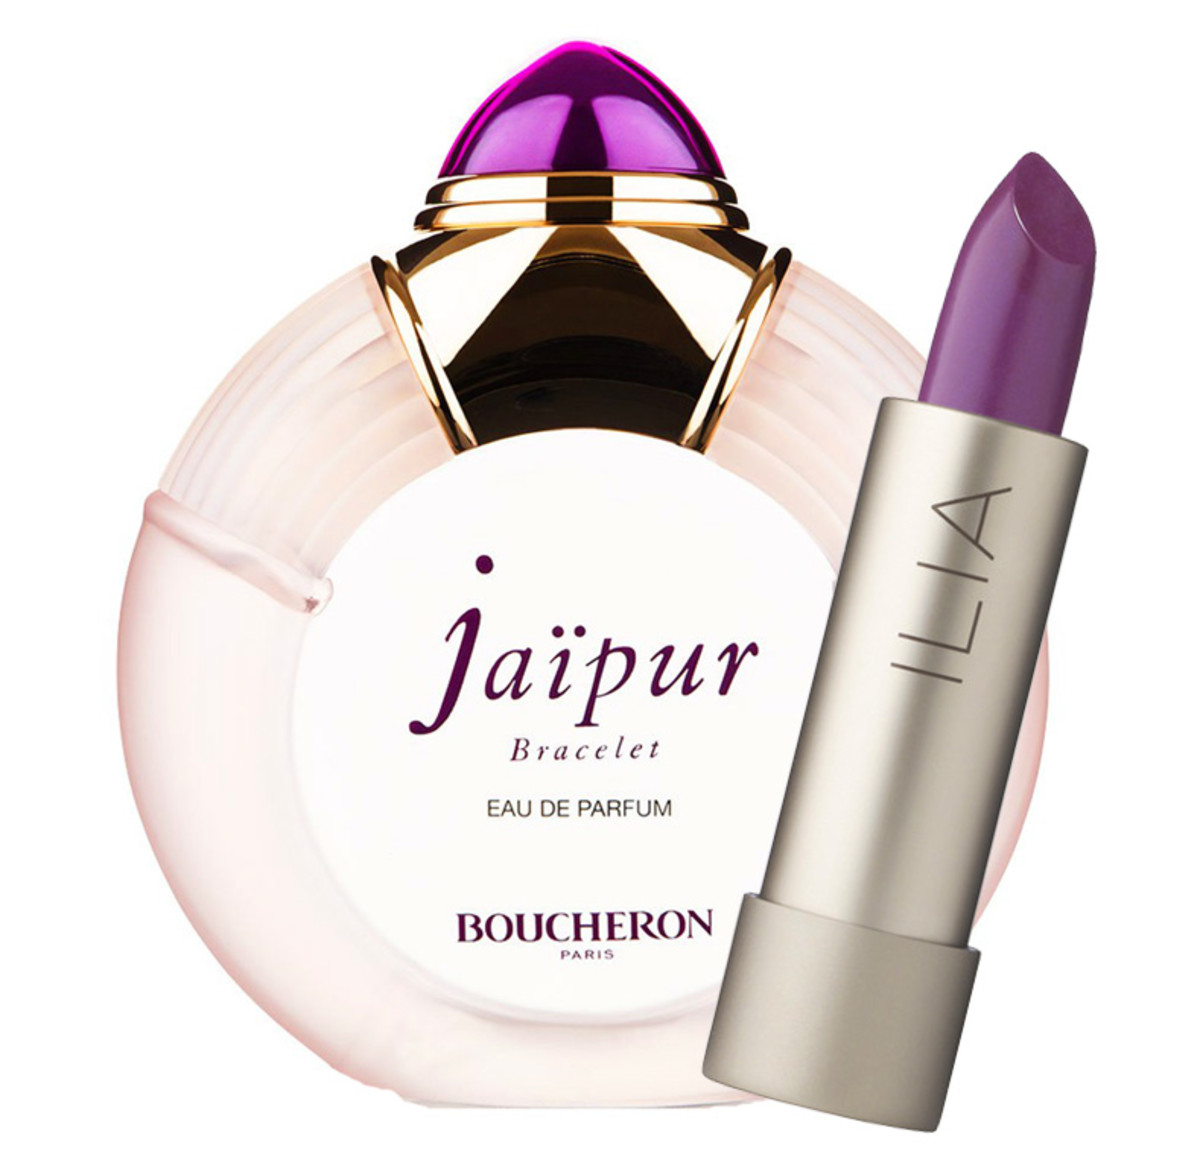 Boucheron Jaipur Bracelet + Ilia Lipstick in Ink Pot